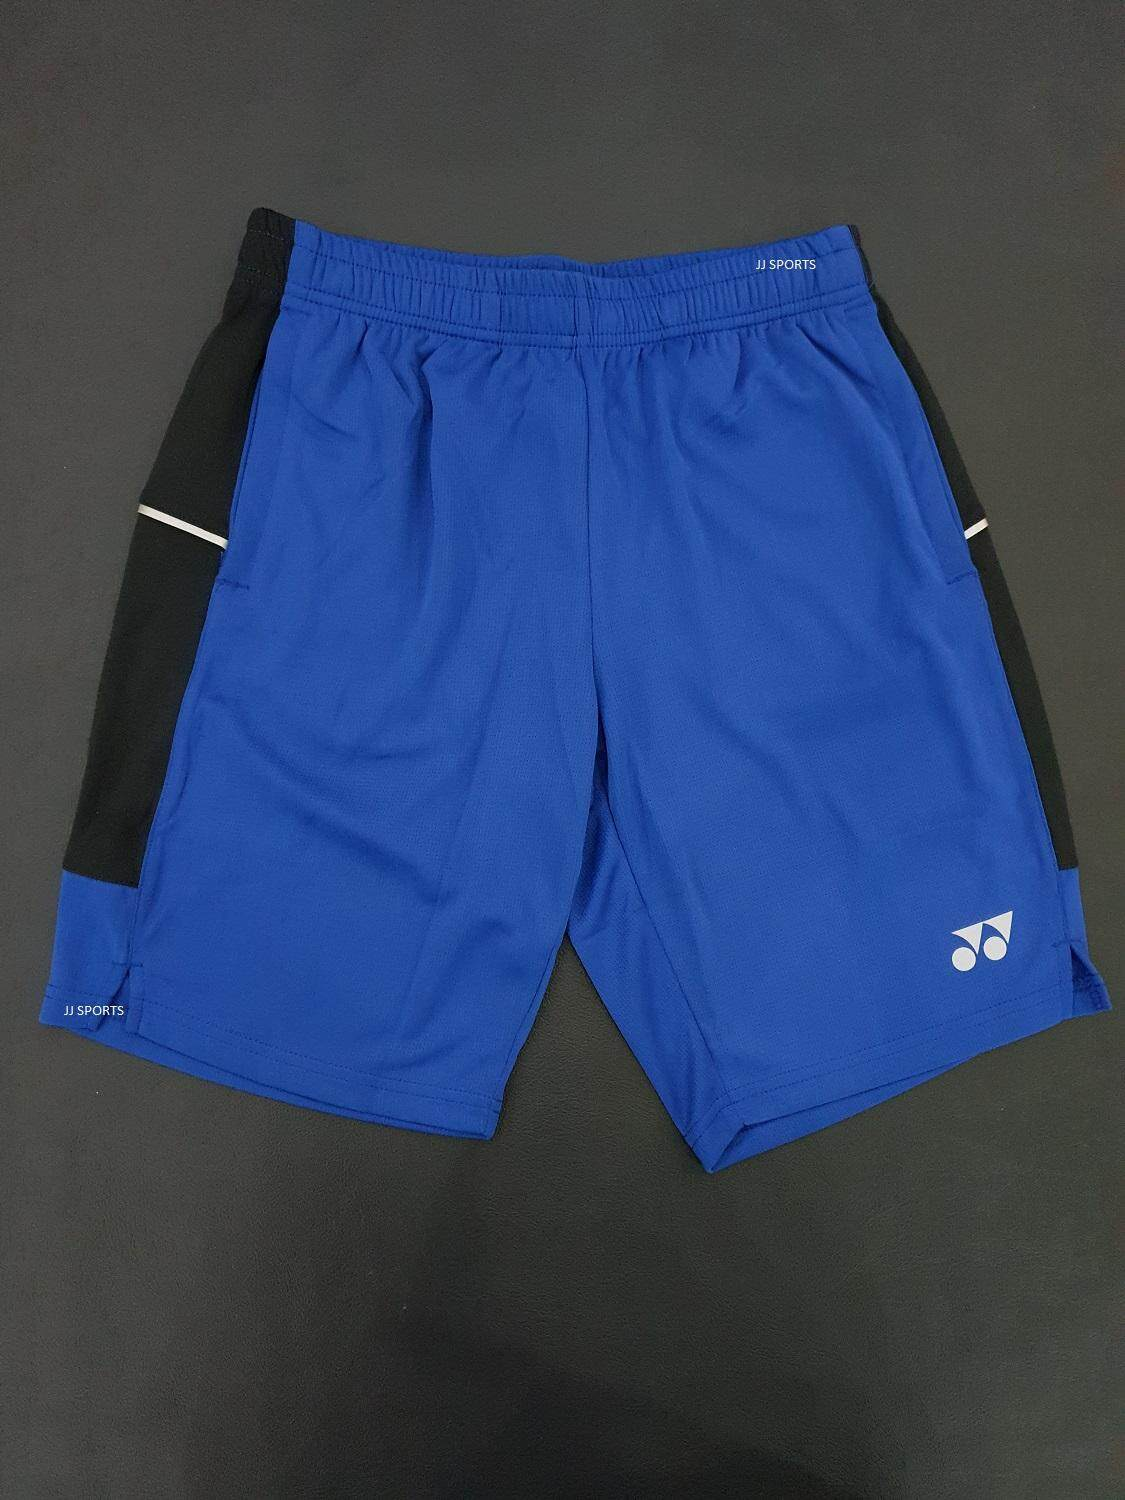 high quality unique design buy good Wilson,Yonex - Buy Wilson,Yonex at Best Price in Malaysia ...